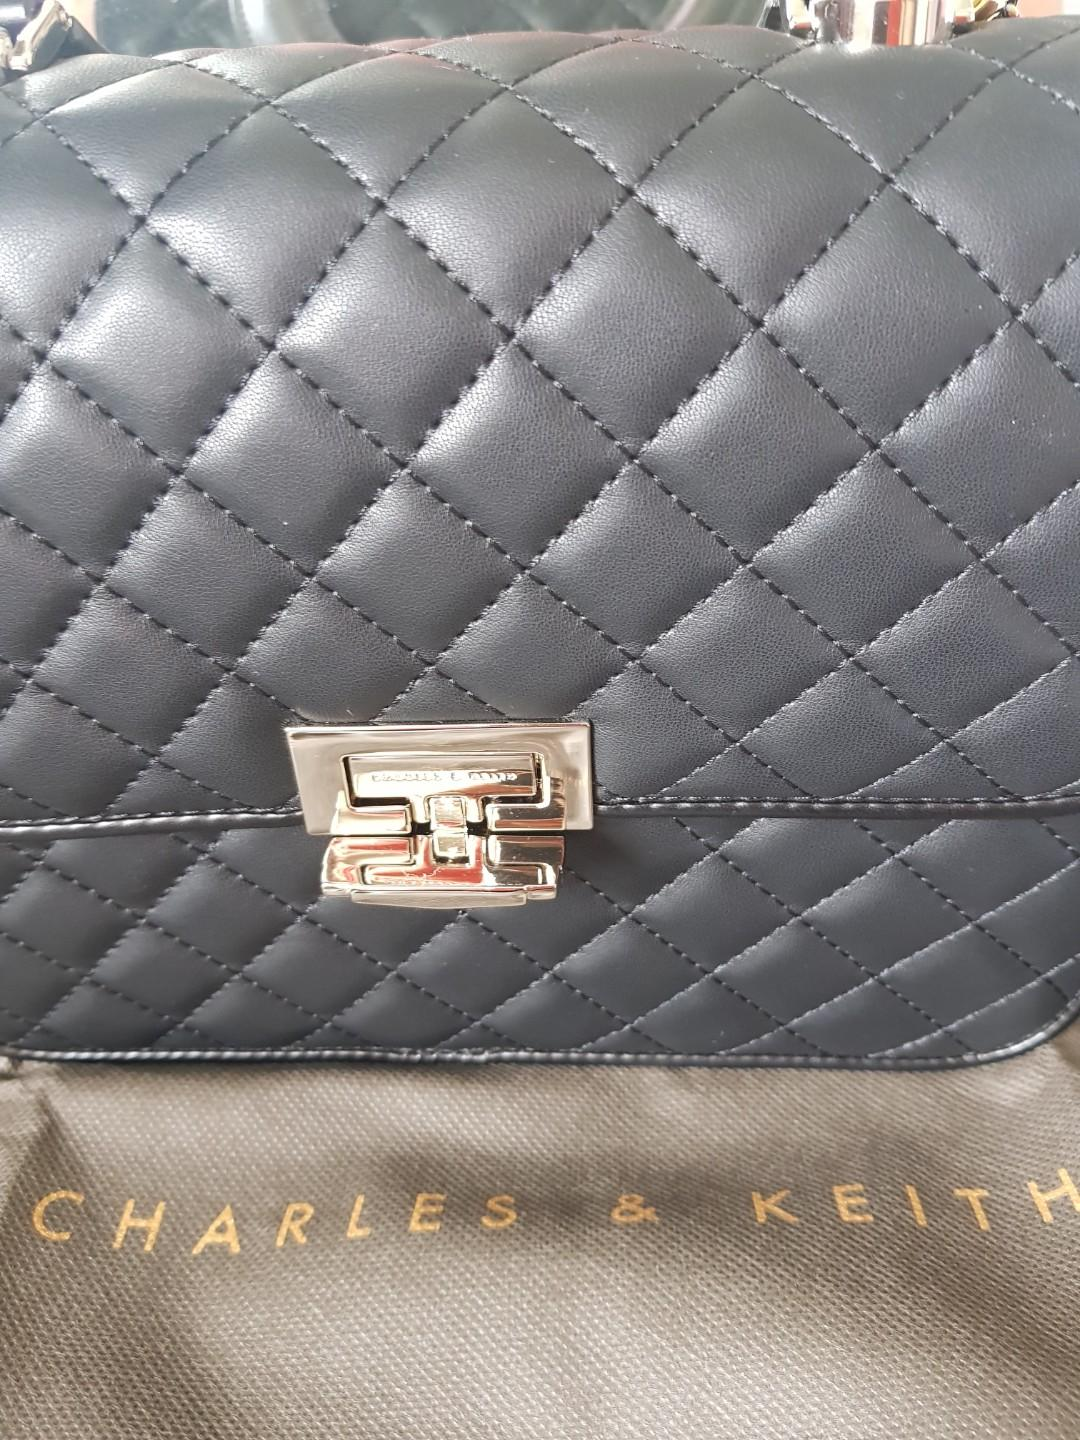 Brand Charles & Keith Shoulder Bag (Special Limited Edition) - Original from Singapore